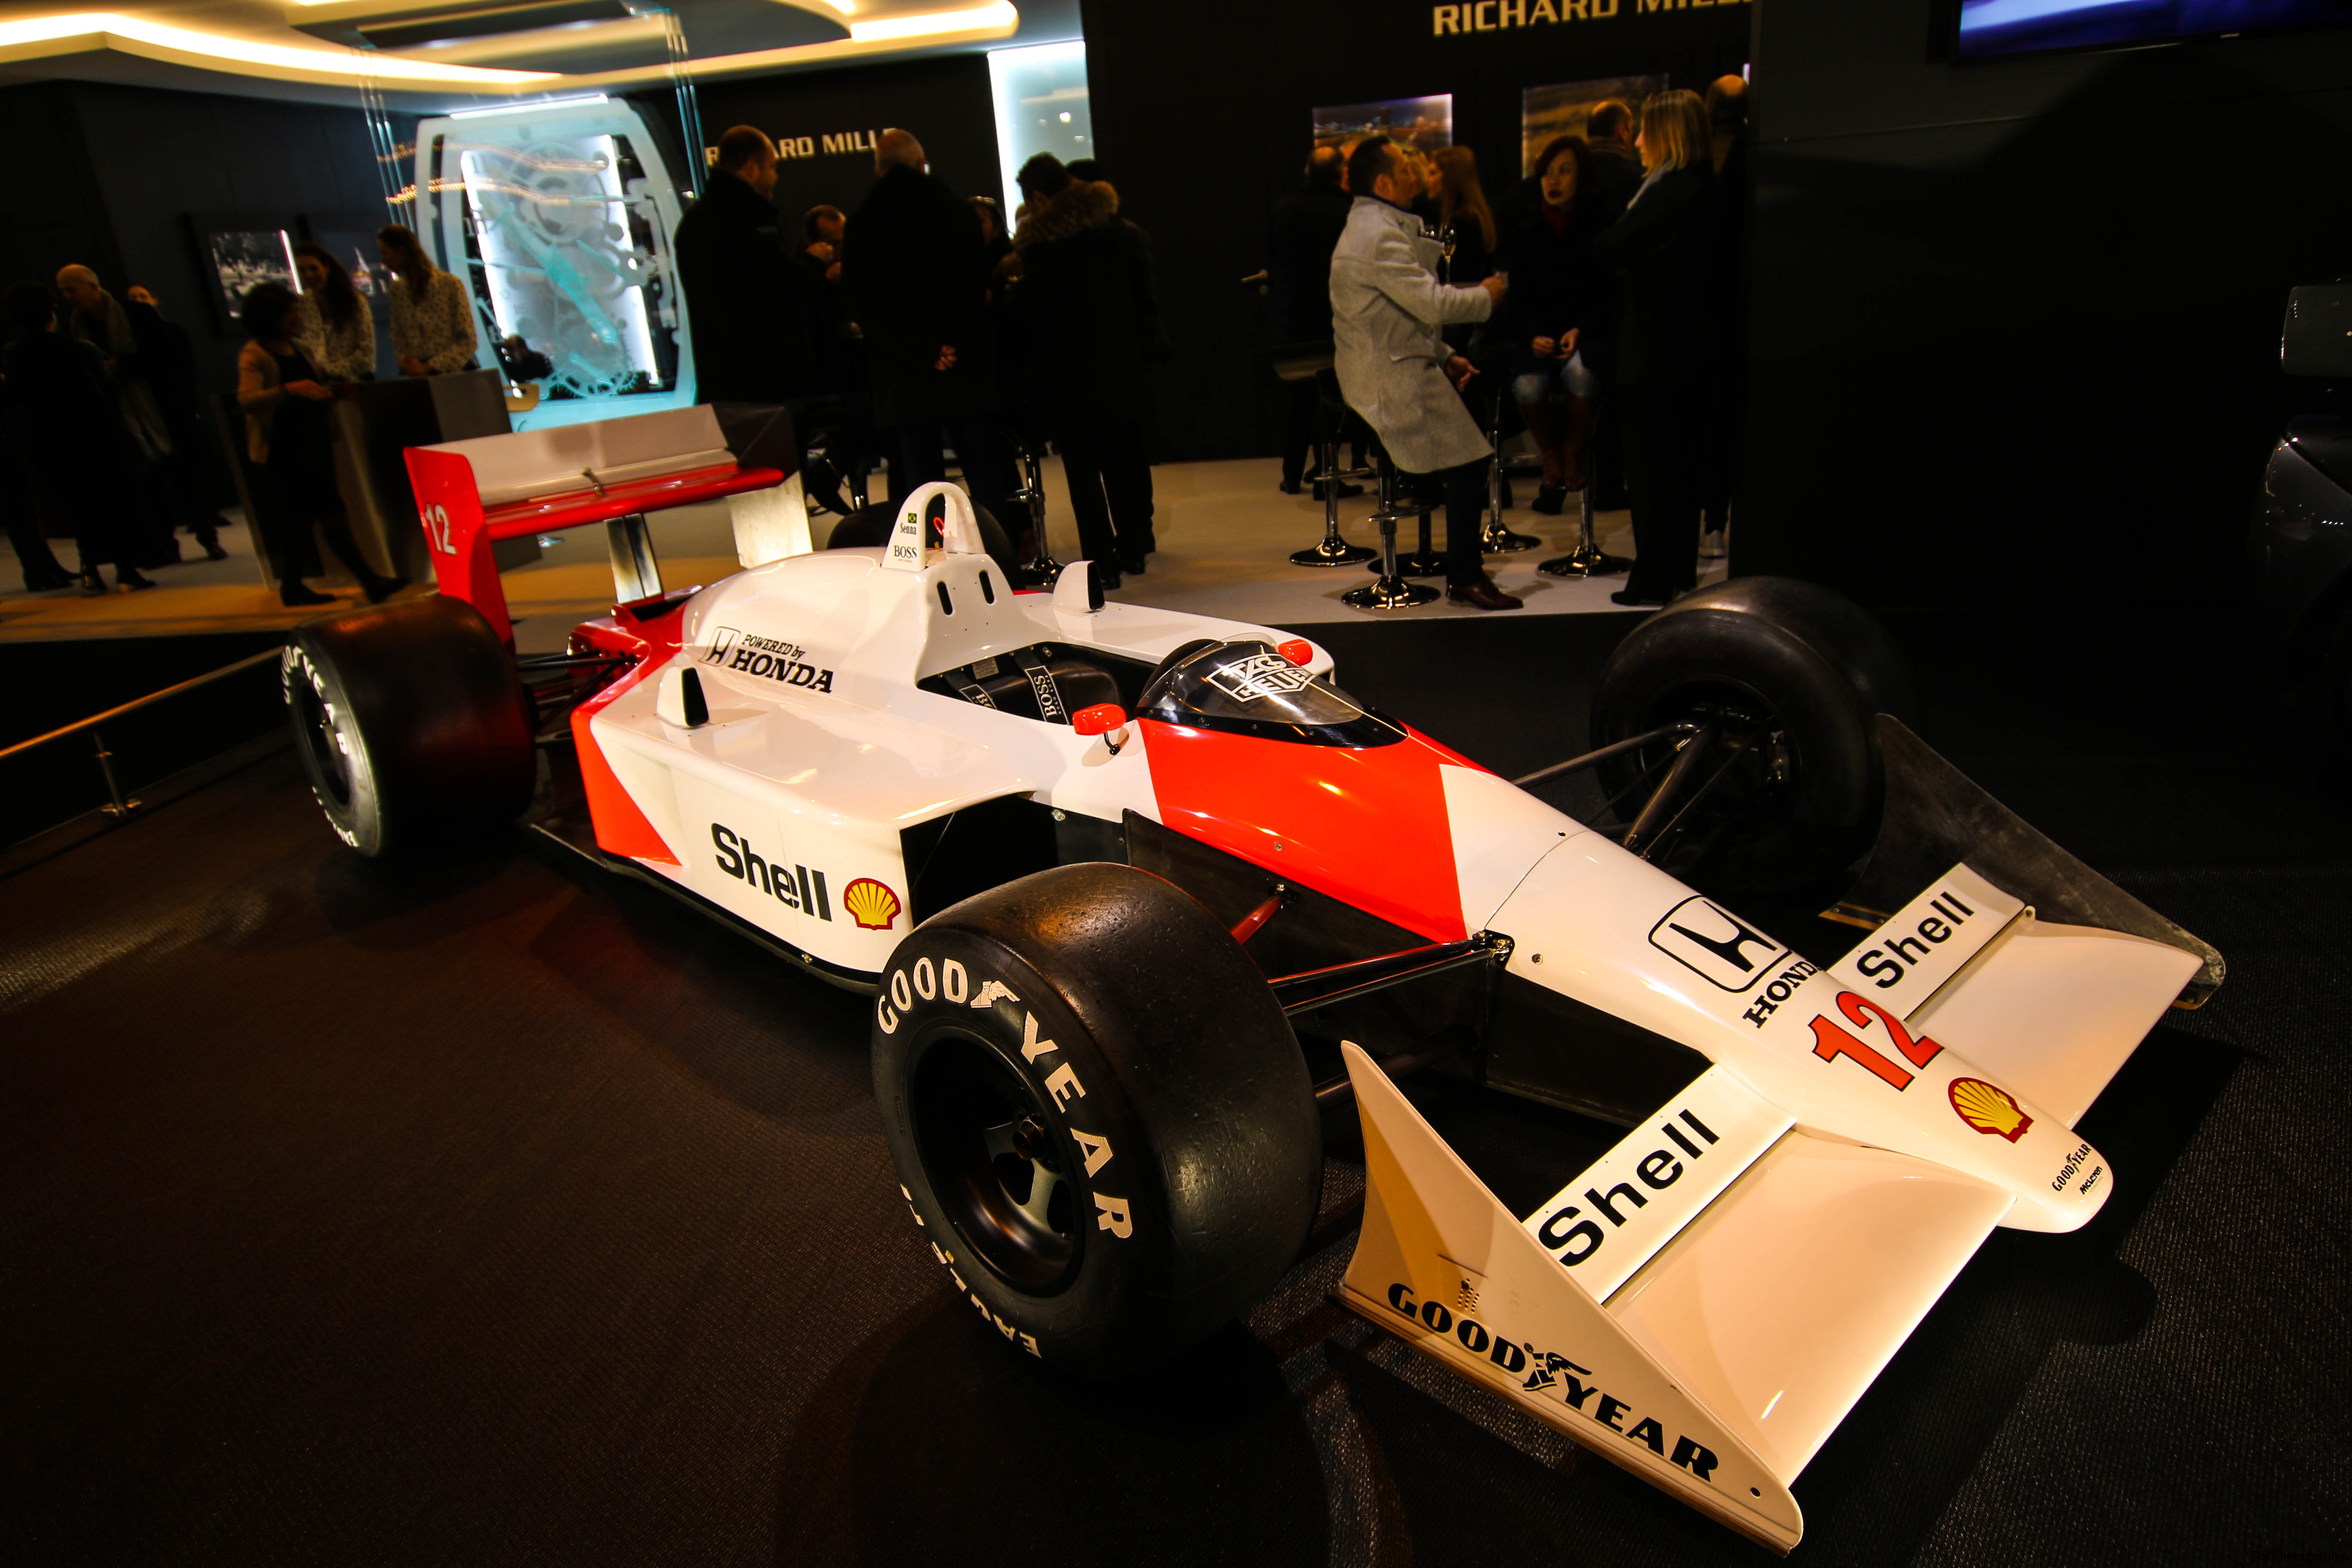 McLaren MP4/4 - F1 1988 - stand Richard Mille - Retromobile 2018 - photo by Arnaud Demasier RS Photographie